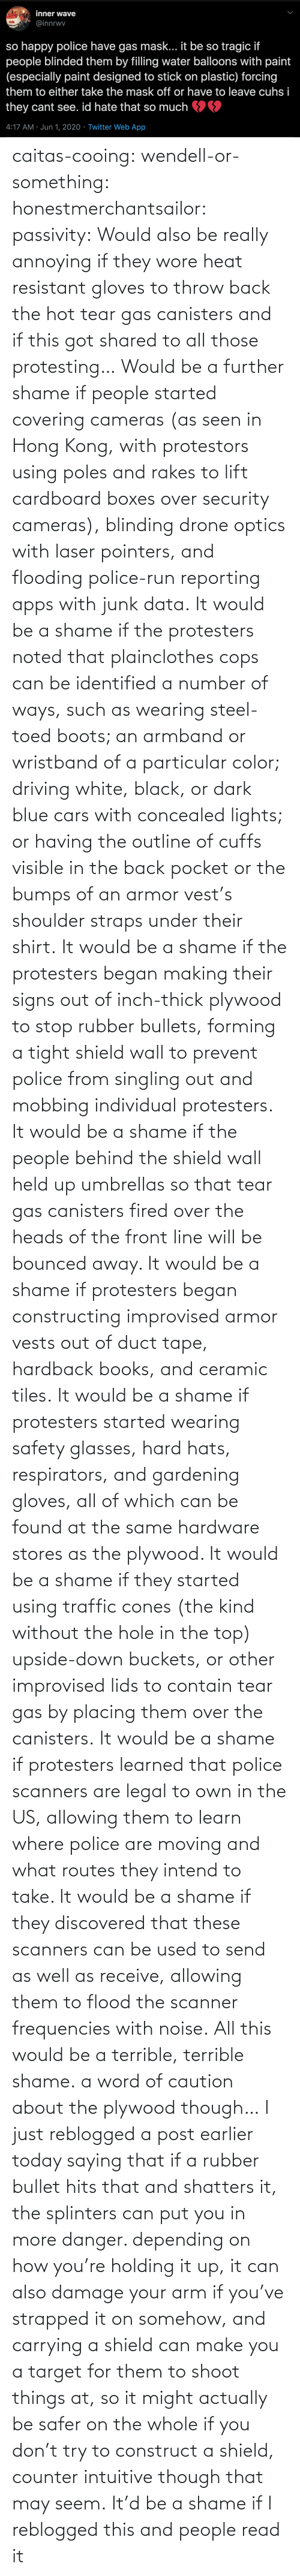 Traffic: caitas-cooing:  wendell-or-something: honestmerchantsailor:  passivity: Would also be really annoying if they wore heat resistant gloves to throw back the hot tear gas canisters and if this got shared to all those protesting… Would be a further shame if people started covering cameras (as seen in Hong Kong, with protestors using poles and rakes to lift cardboard boxes over security cameras), blinding drone optics with laser pointers, and flooding police-run reporting apps with junk data. It would be a shame if the protesters noted that plainclothes cops can be identified a number of ways, such as wearing steel-toed boots; an armband or wristband of a particular color; driving white, black, or dark blue cars with concealed lights; or having the outline of cuffs visible in the back pocket or the bumps of an armor vest's shoulder straps under their shirt. It would be a shame if the protesters began making their signs out of inch-thick plywood to stop rubber bullets, forming a tight shield wall to prevent police from singling out and mobbing individual protesters. It would be a shame if the people behind the shield wall held up umbrellas so that tear gas canisters fired over the heads of the front line will be bounced away. It would be a shame if protesters began constructing improvised armor vests out of duct tape, hardback books, and ceramic tiles. It would be a shame if protesters started wearing safety glasses, hard hats, respirators, and gardening gloves, all of which can be found at the same hardware stores as the plywood. It would be a shame if they started using traffic cones (the kind without the hole in the top) upside-down buckets, or other improvised lids to contain tear gas by placing them over the canisters. It would be a shame if protesters learned that police scanners are legal to own in the US, allowing them to learn where police are moving and what routes they intend to take. It would be a shame if they discovered that these scanners can be used to send as well as receive, allowing them to flood the scanner frequencies with noise. All this would be a terrible, terrible shame.    a word of caution about the plywood though… I just reblogged a post earlier today saying that if a rubber bullet hits that and shatters it, the splinters can put you in more danger. depending on how you're holding it up, it can also damage your arm if you've strapped it on somehow, and carrying a shield can make you a target for them to shoot things at, so it might actually be safer on the whole if you don't try to construct a shield, counter intuitive though that may seem.    It'd be a shame if I reblogged this and people read it